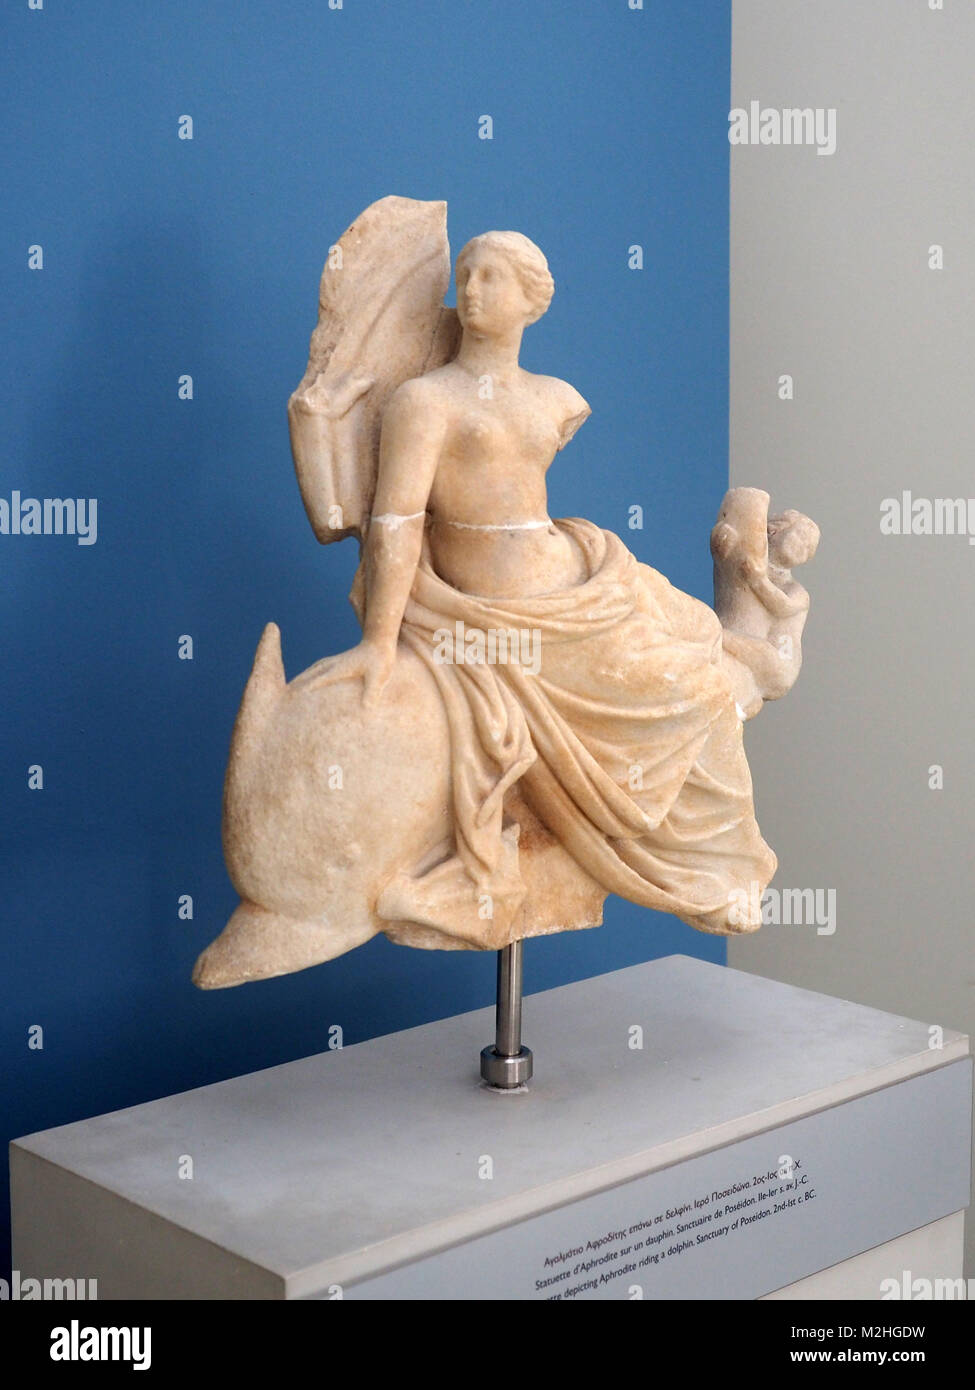 Classic statue of a woman on a dolphin, at the Archaeological Museum of Samothrace, Samothrace Island, Greece - Stock Image